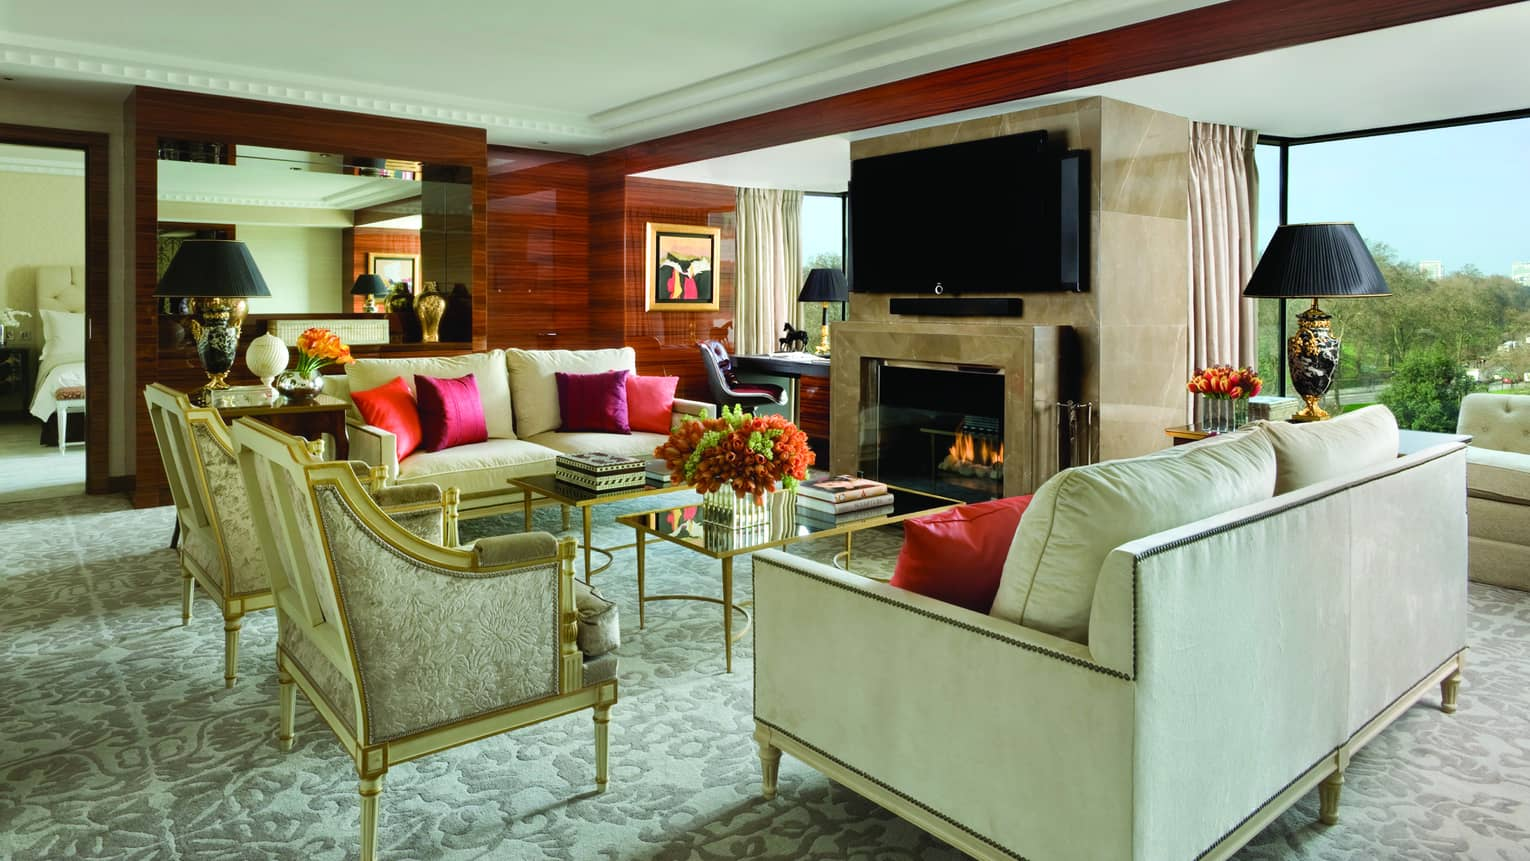 Presidential Suite elegant white sofas, armchairs by marble fireplace, desk, windows